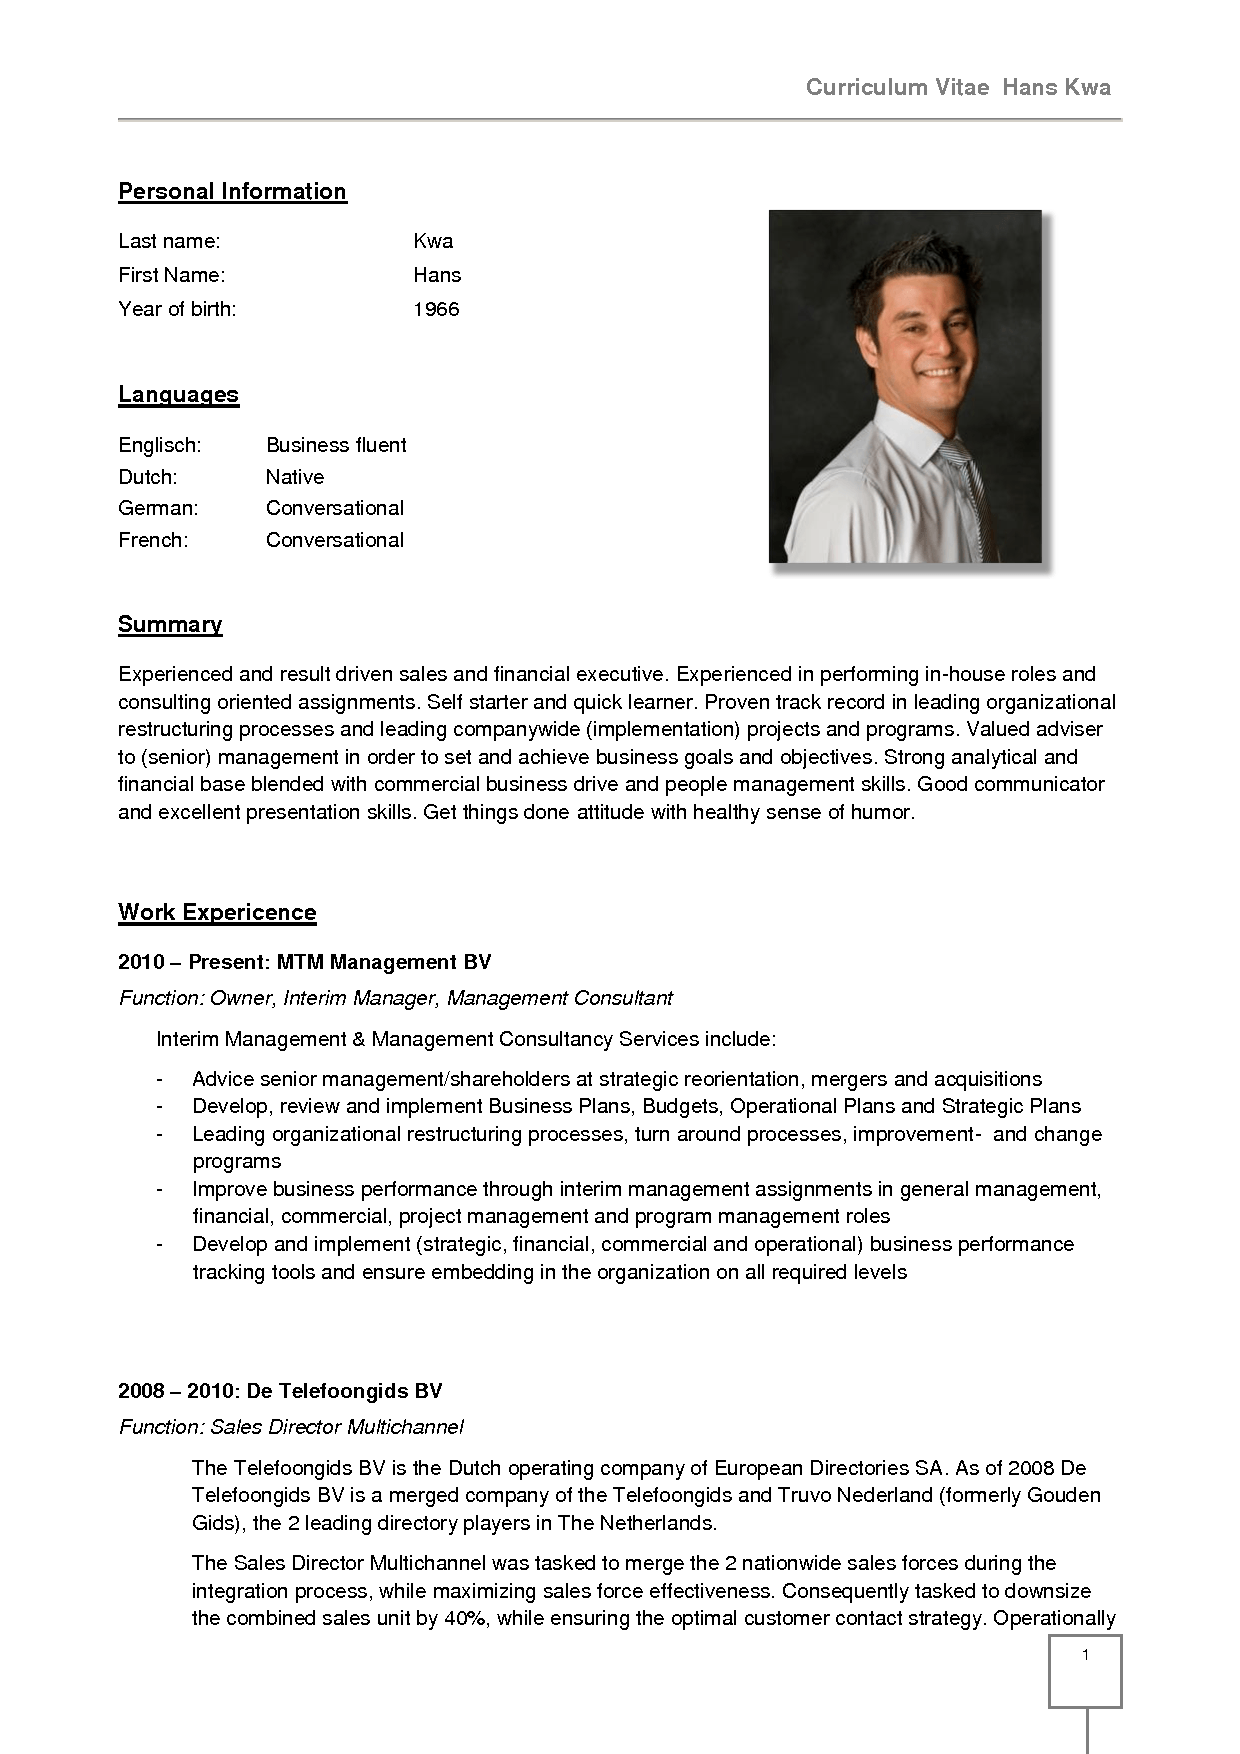 Cv Template Germany 2 Cv Template Pinterest Resume Format